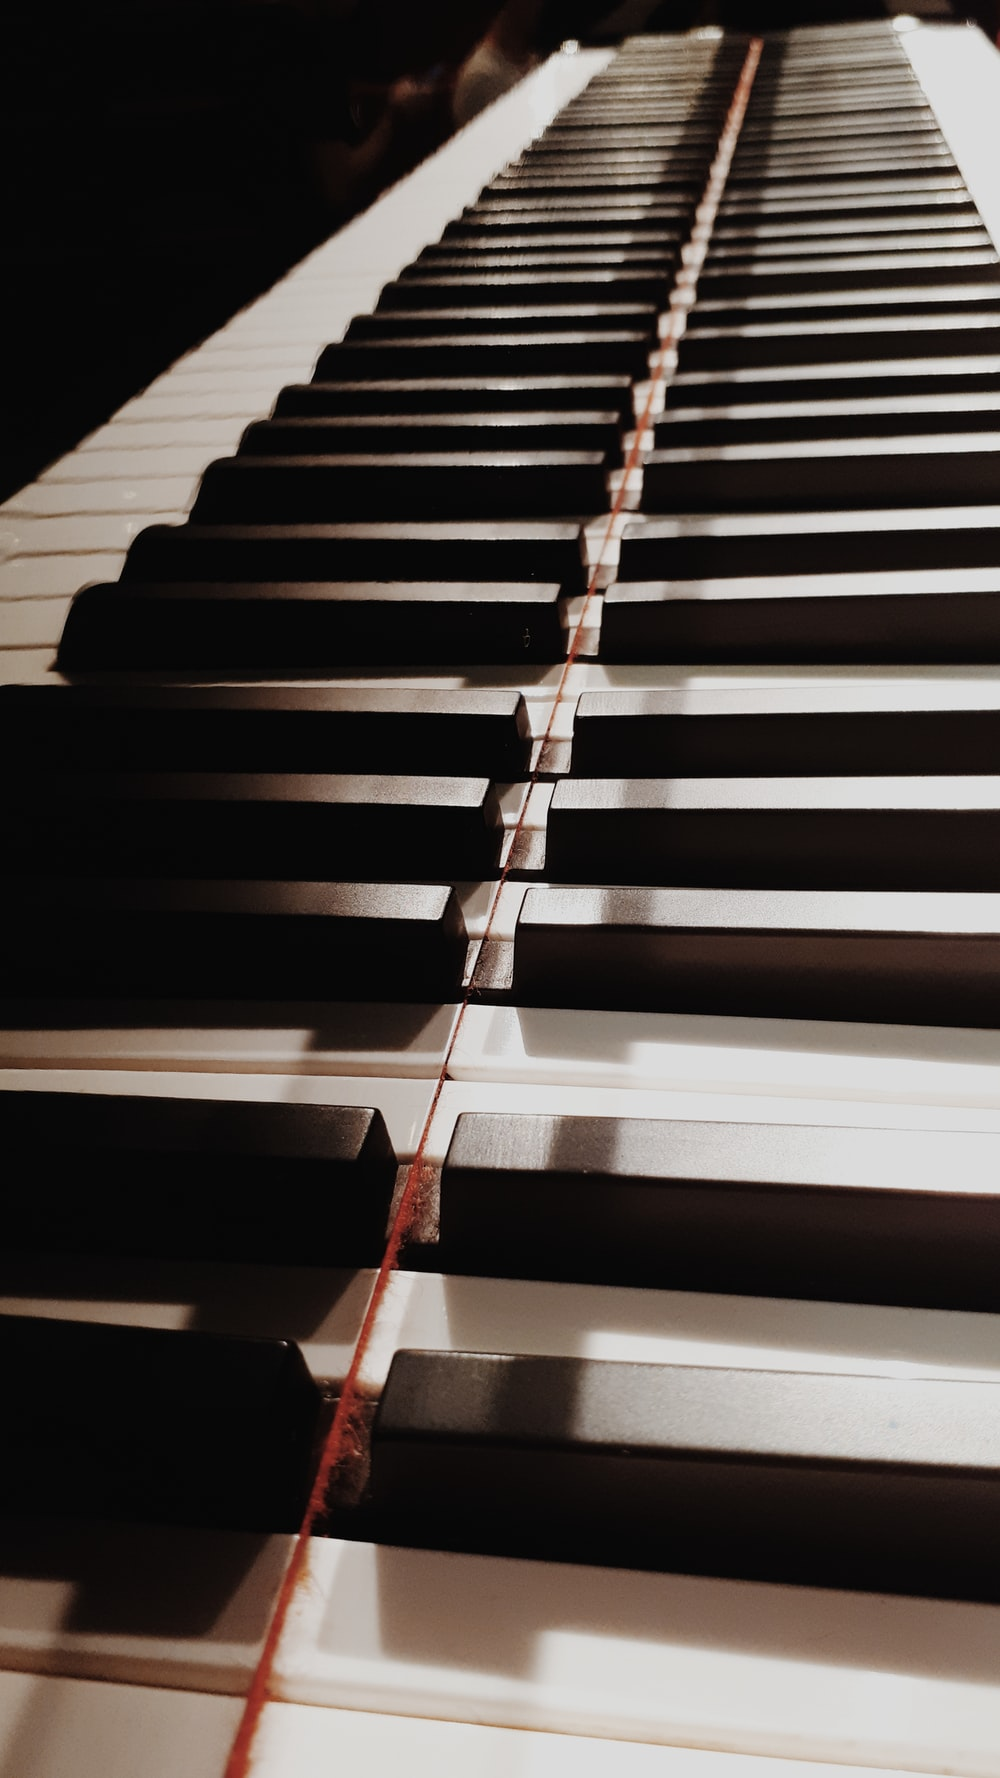 shallow focus photo of piano